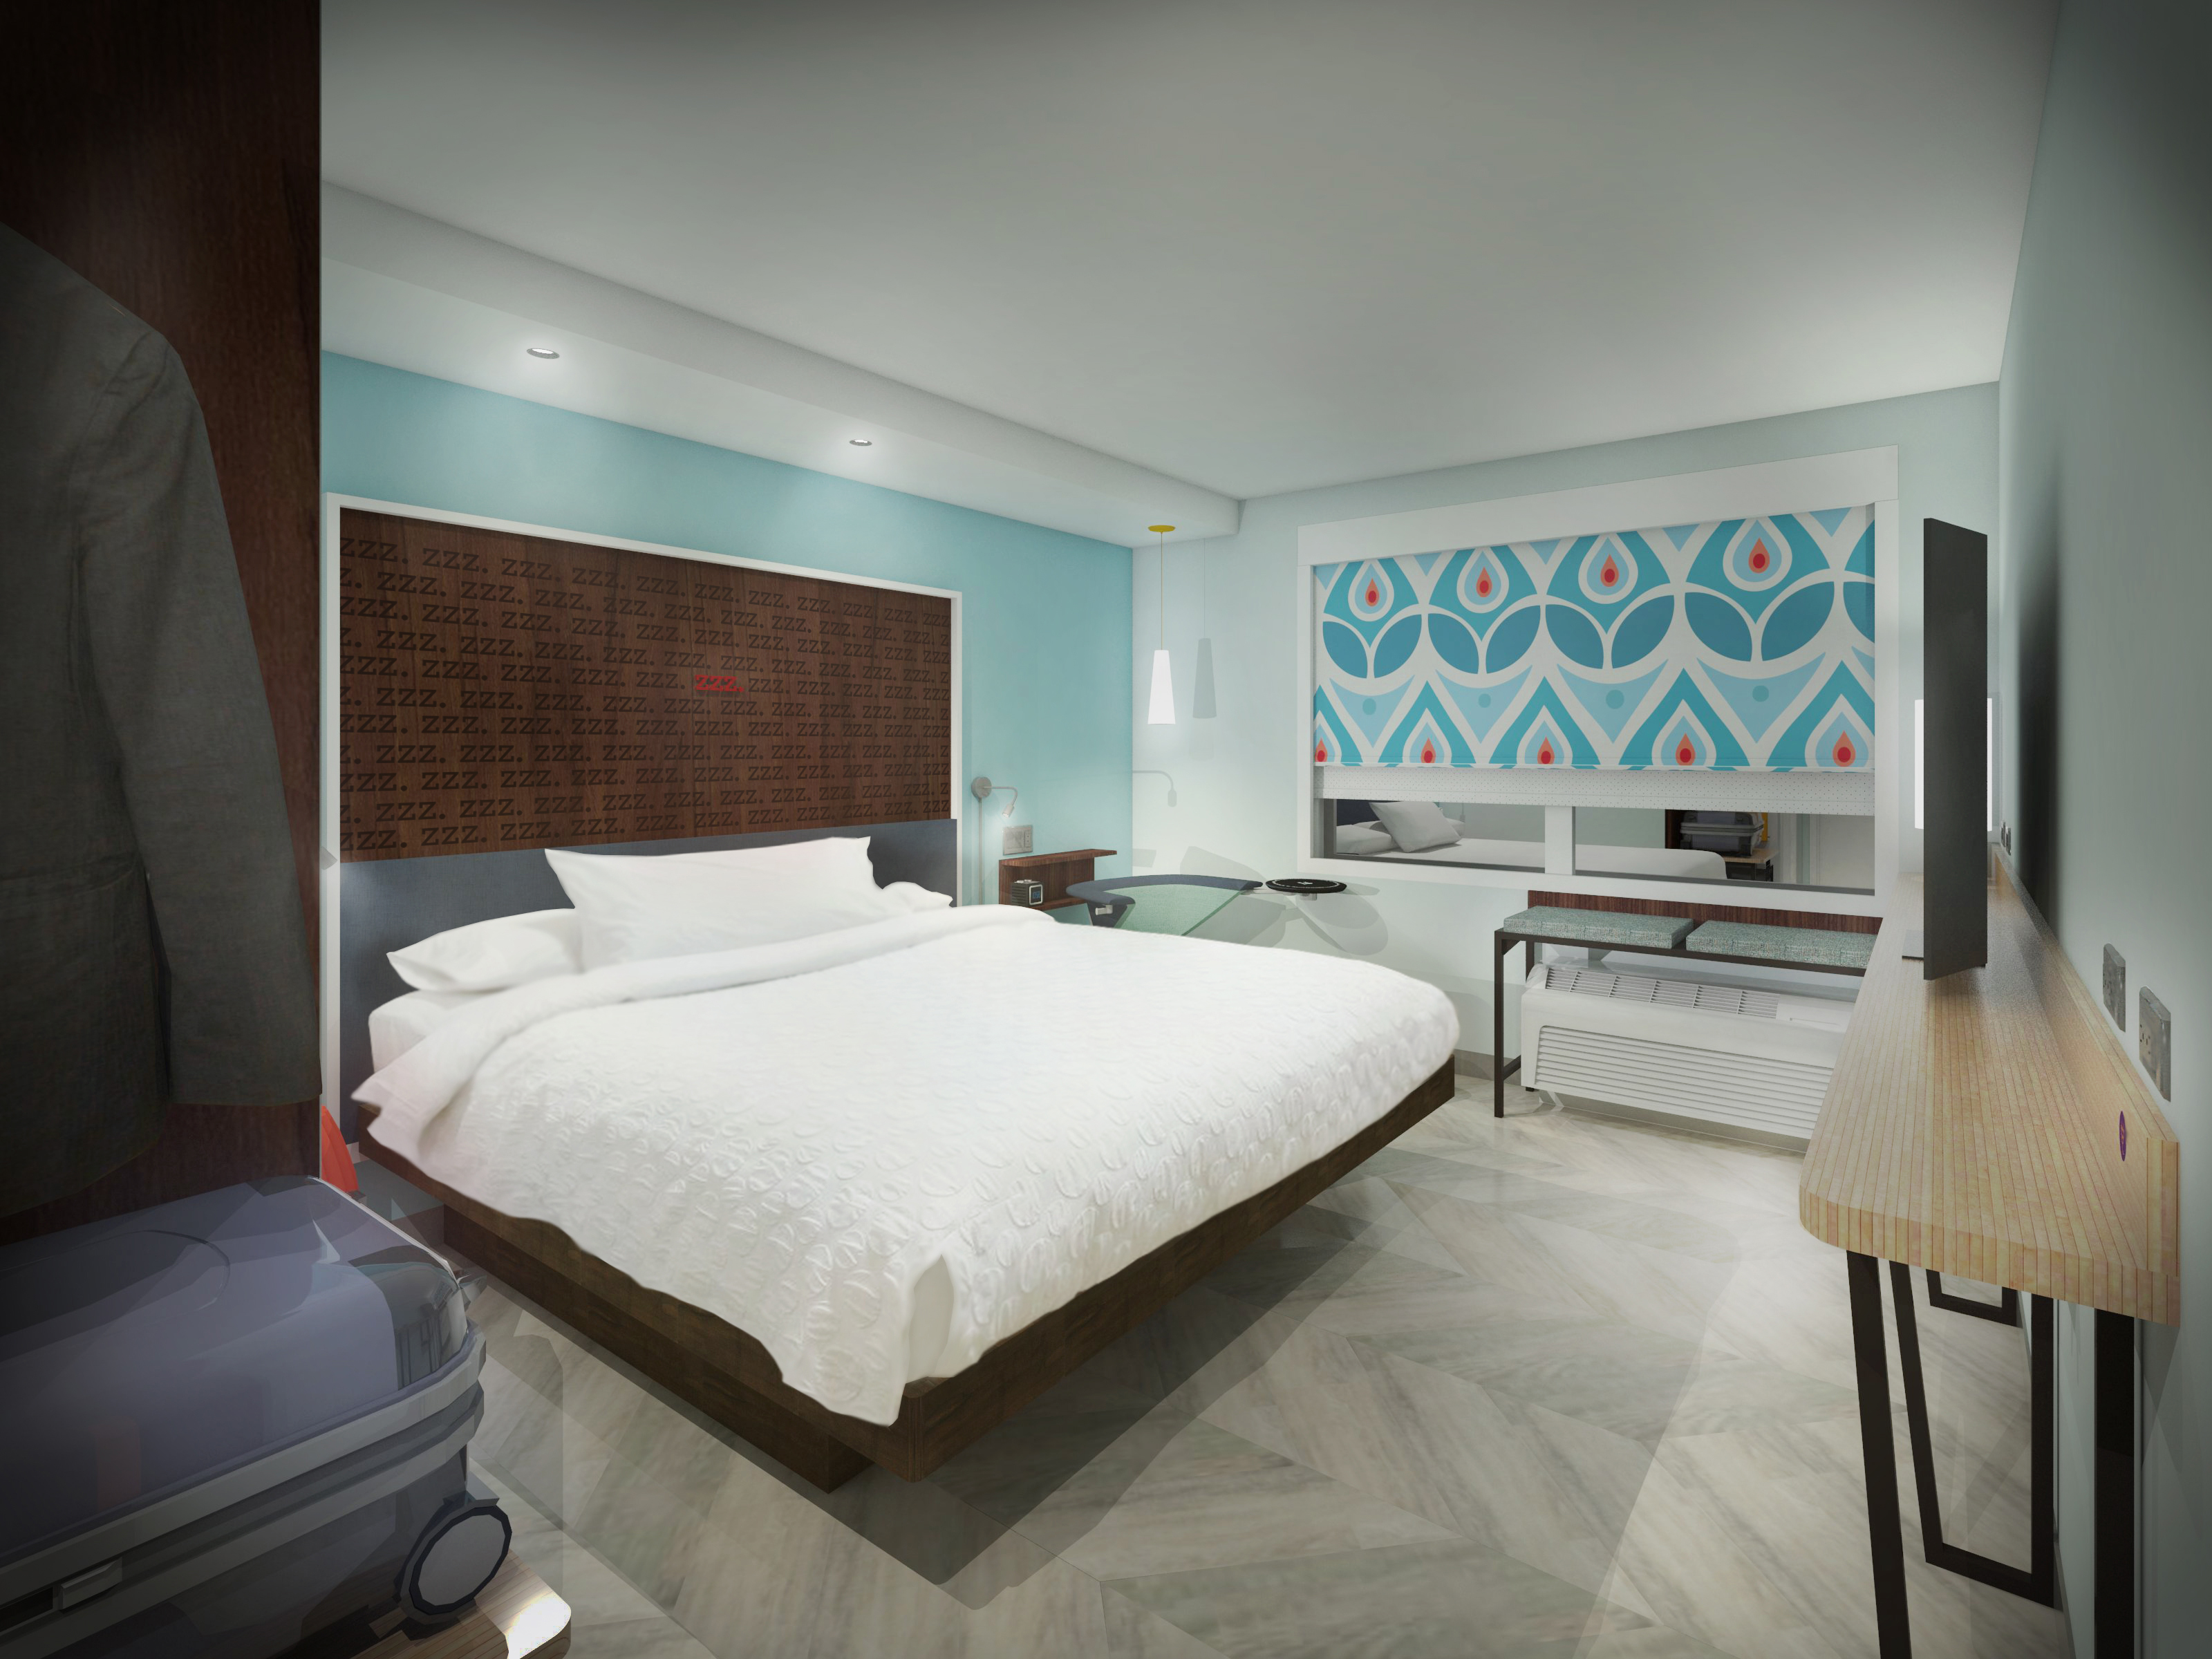 Hilton launches new budget hotel chain aimed at young for Design budget hotel salinenparc 0 sterne